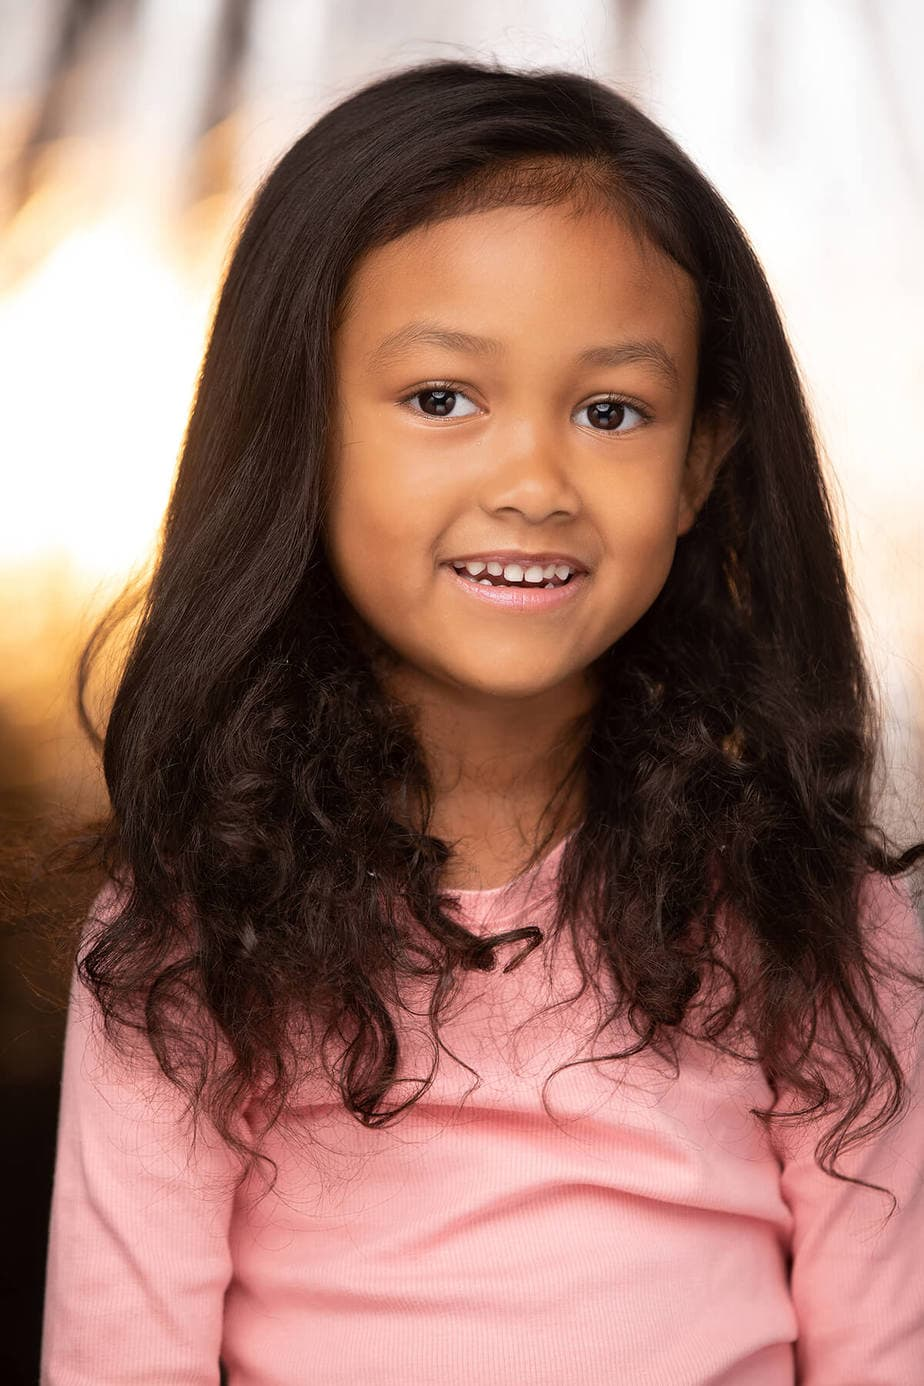 Child Actor Headshots Mack and Mabel